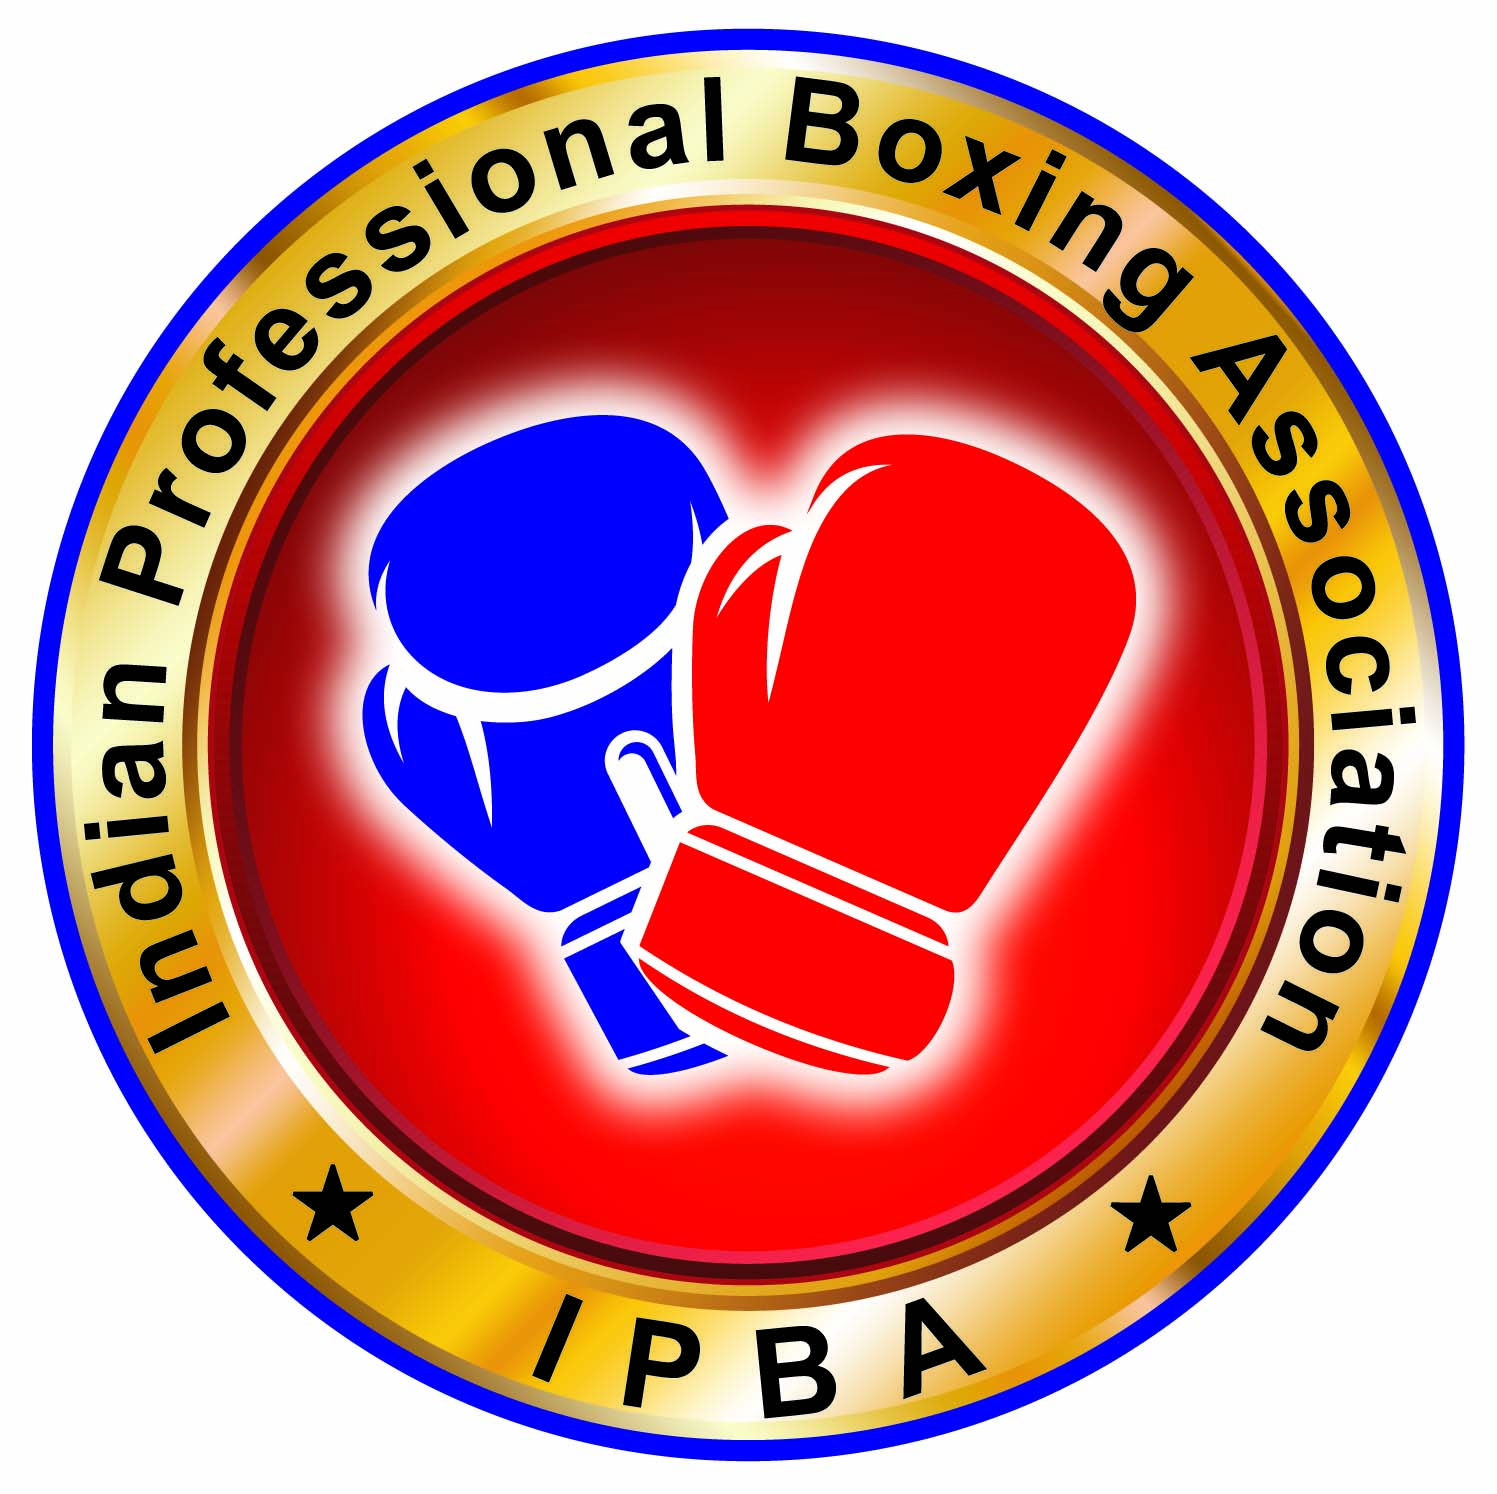 Indian amateur boxing federation